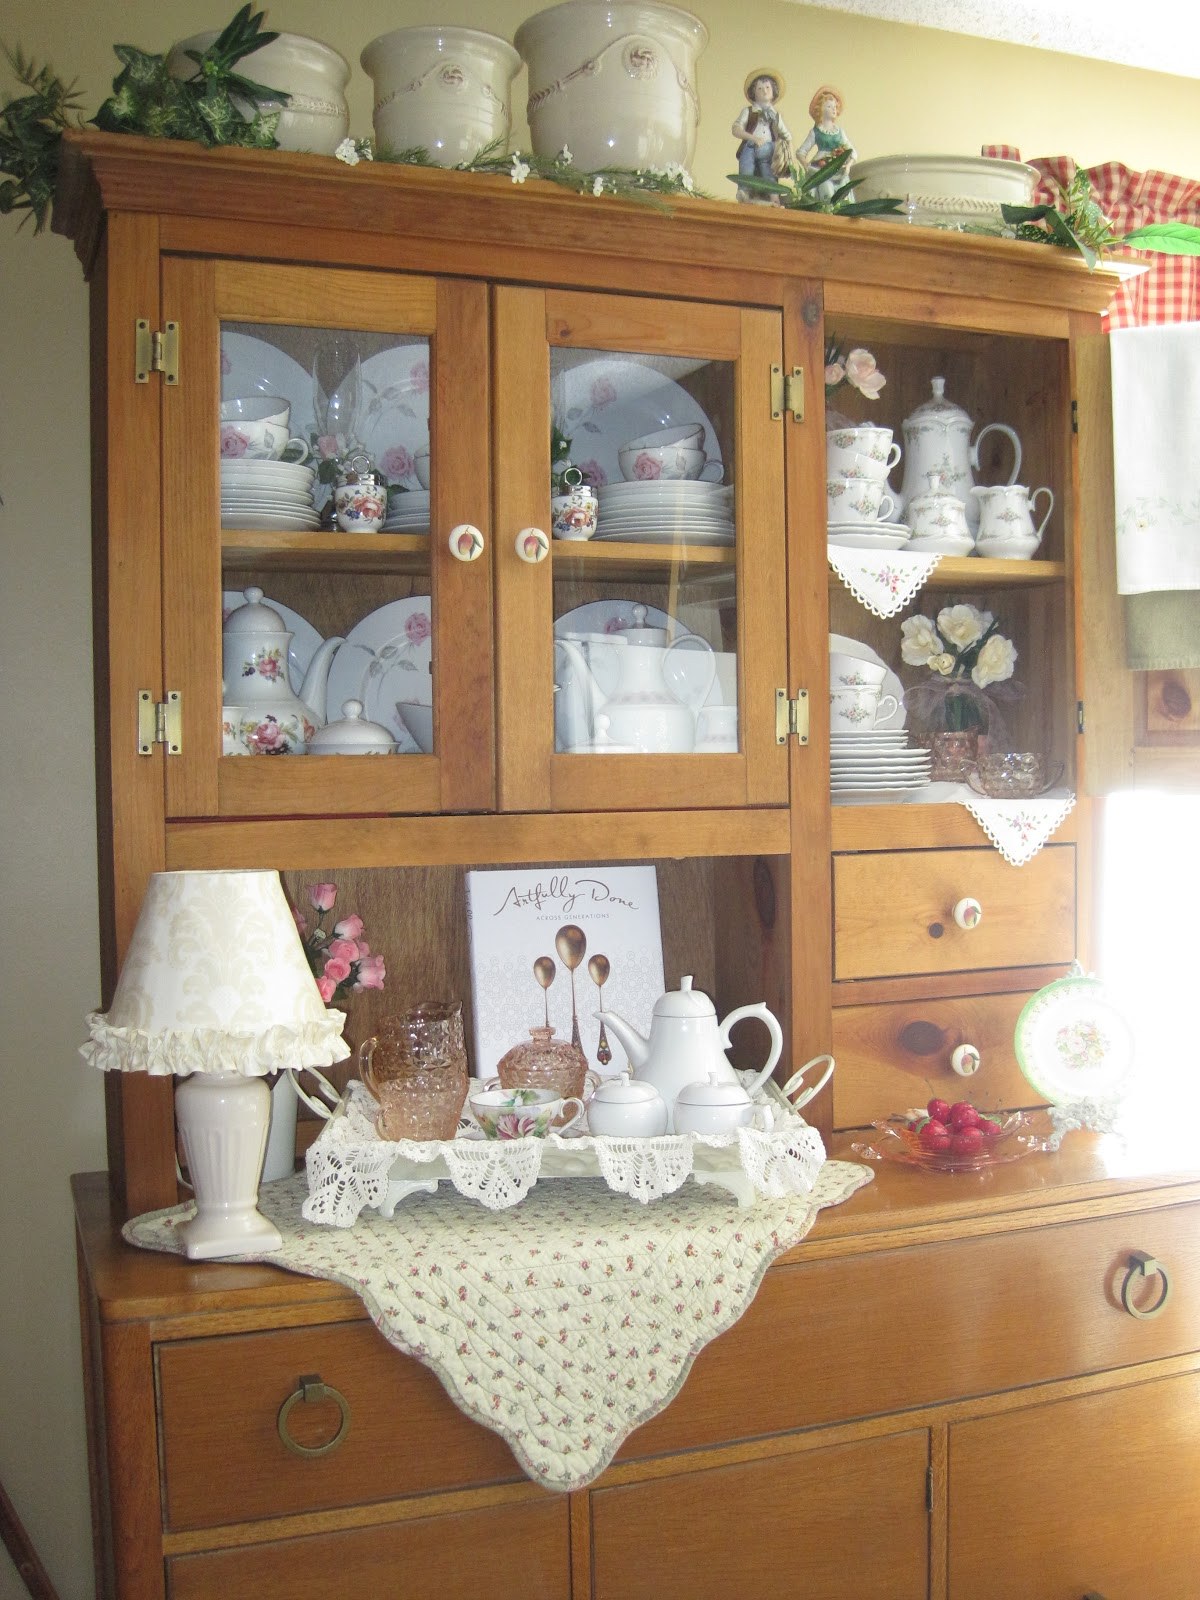 By arranging your antique china artistically in a hutch, you create a safe place for your plateware as well as a beautiful display.